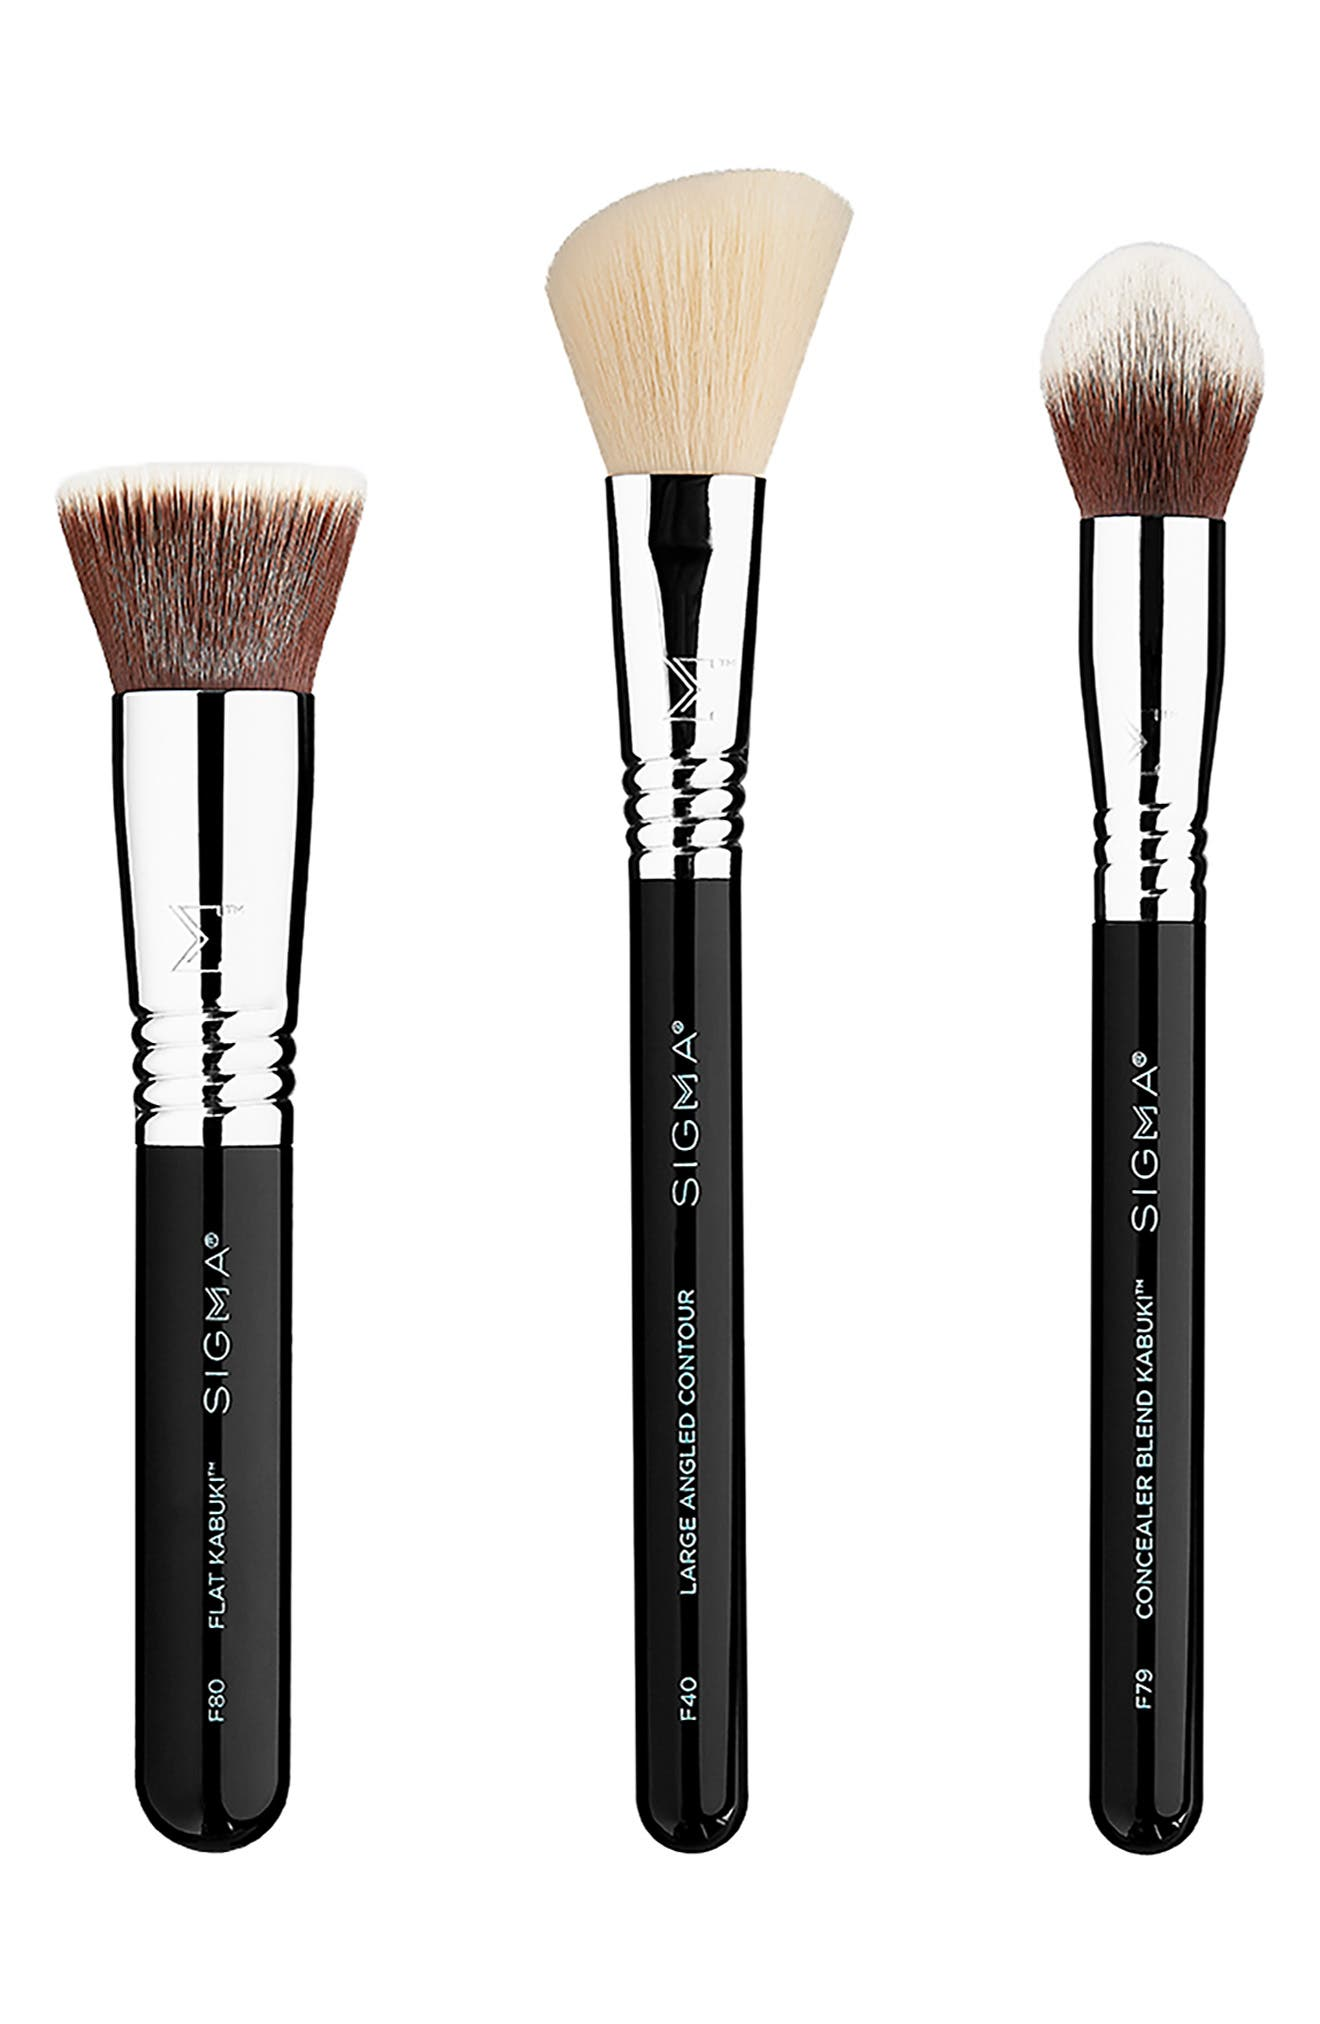 Finished Face Brush Set,                             Main thumbnail 1, color,                             NO COLOR